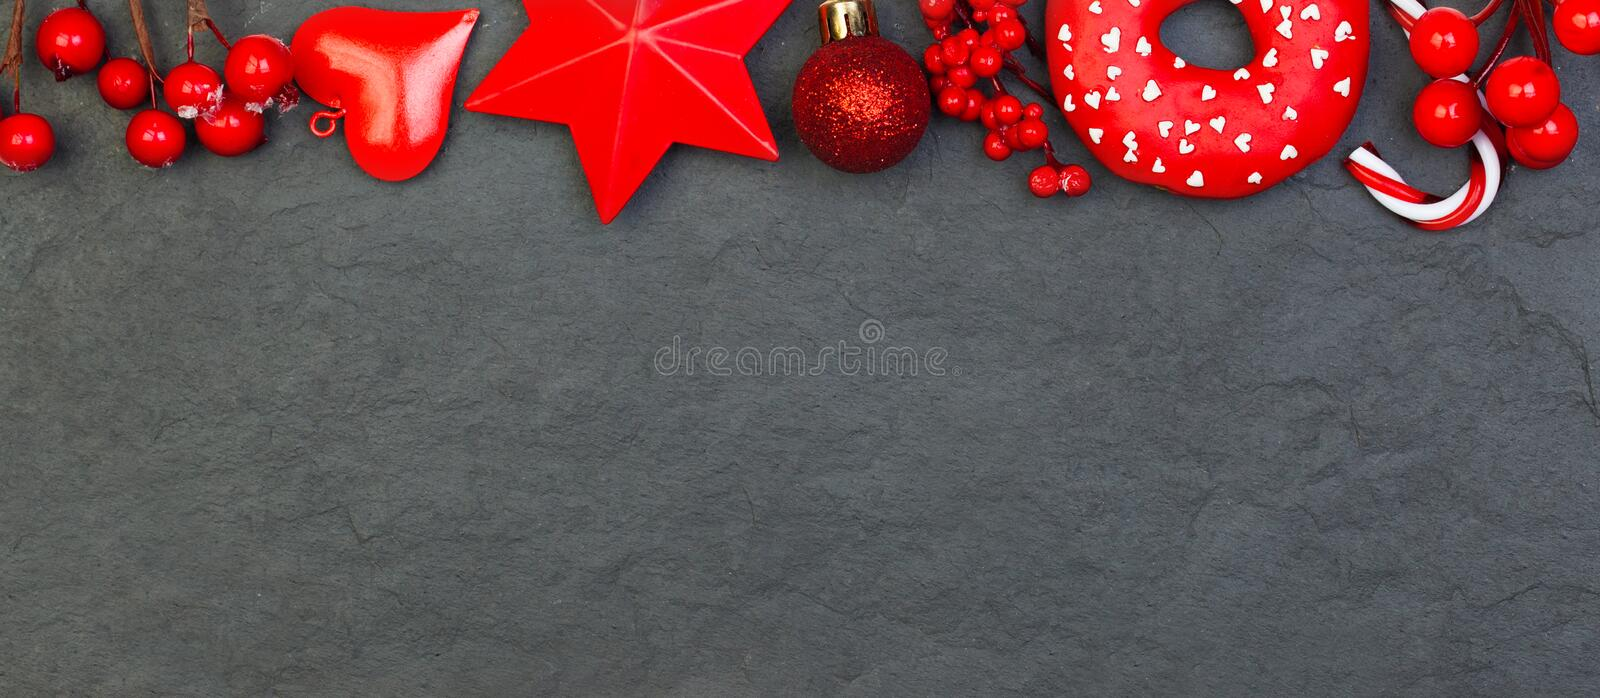 Red Christmas border on black background. Xmas composition with holly berries, red decor and glass baubles.  stock photography